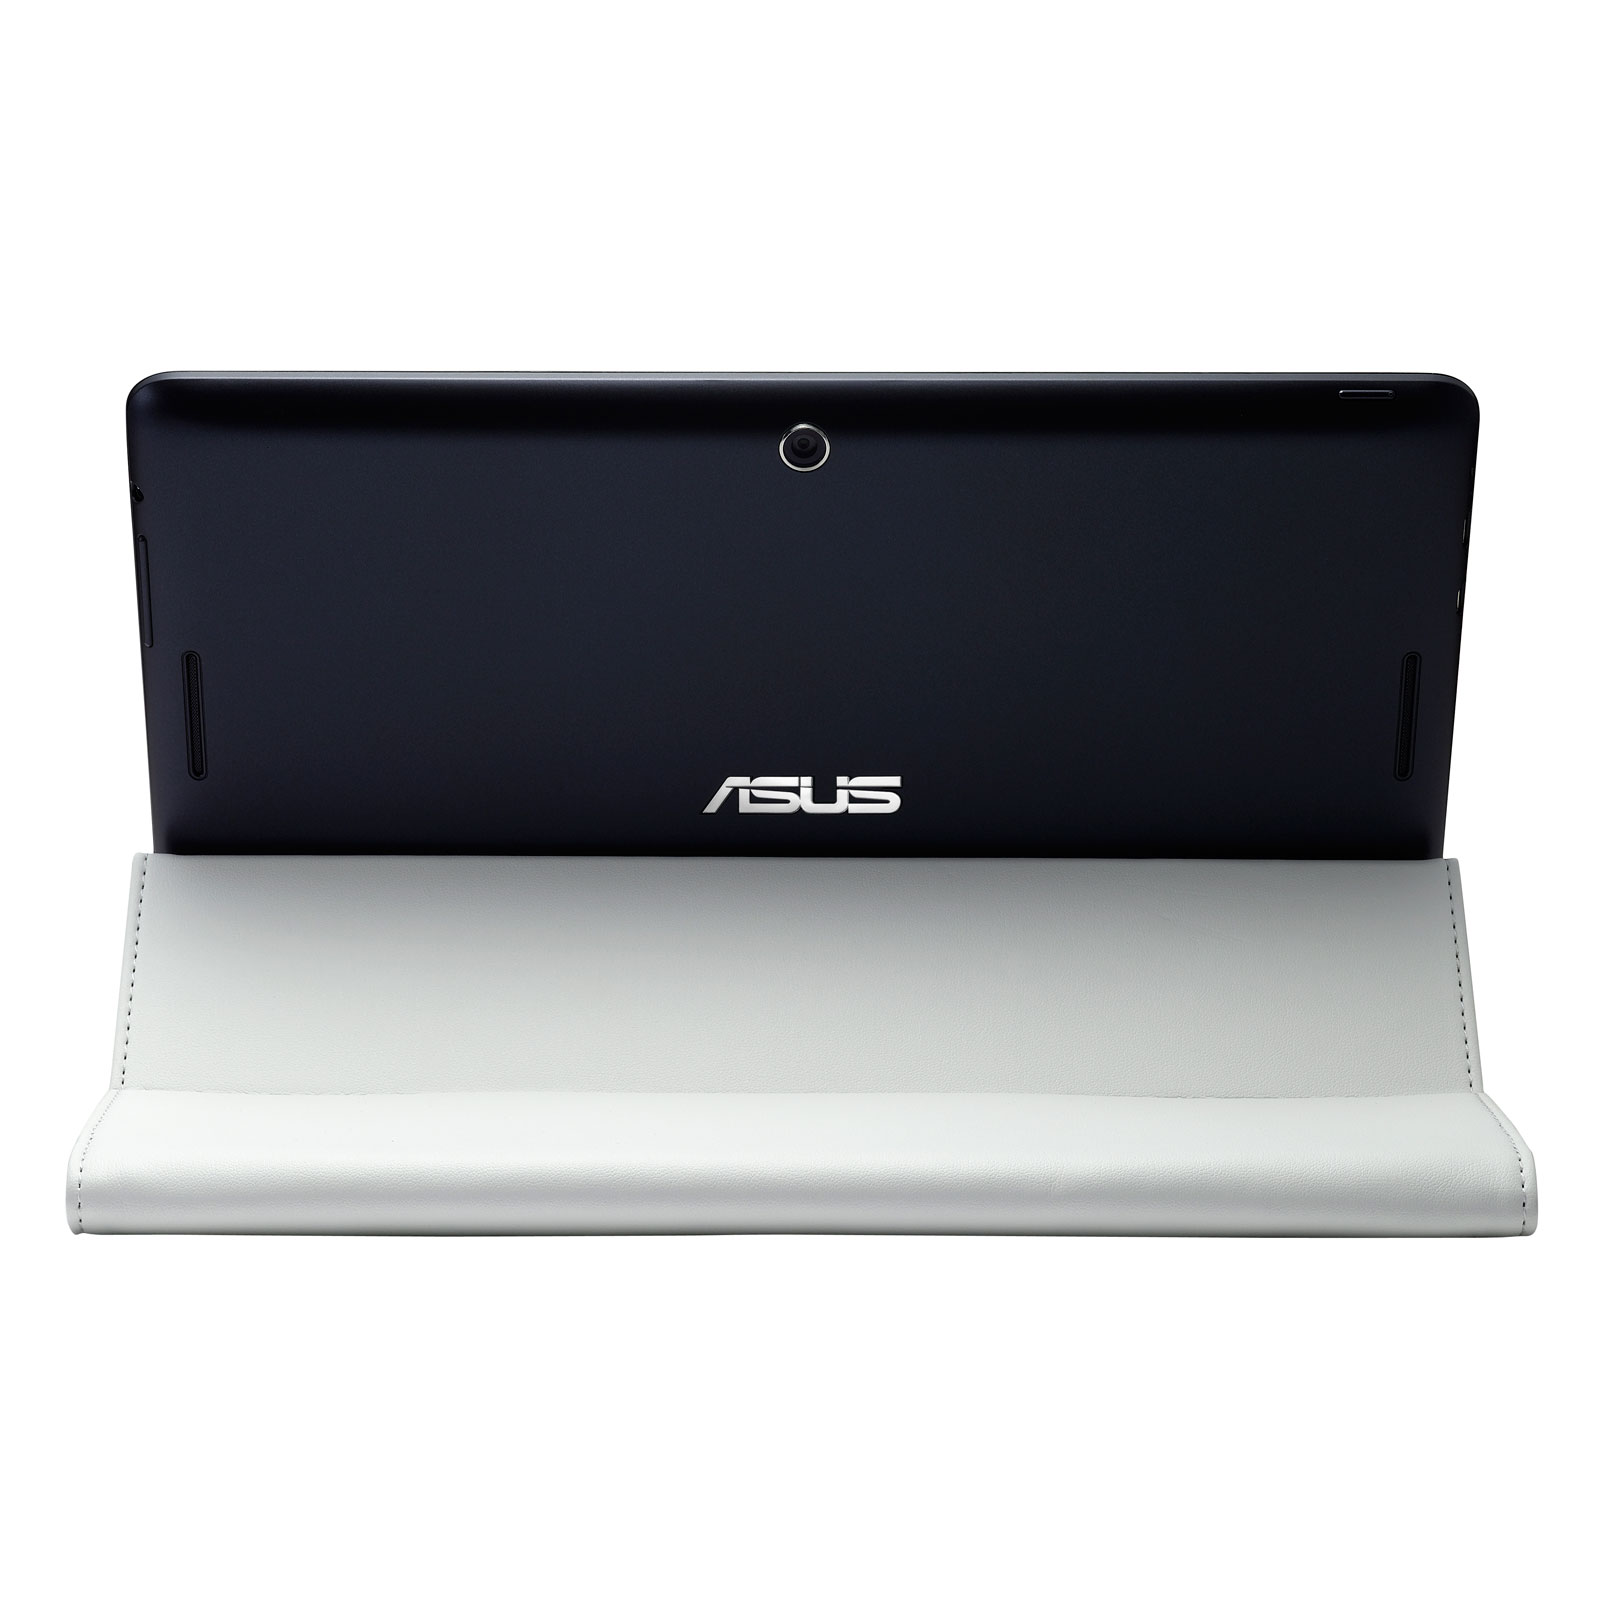 asus versasleeve x 10 blanc etui tablette asus sur. Black Bedroom Furniture Sets. Home Design Ideas